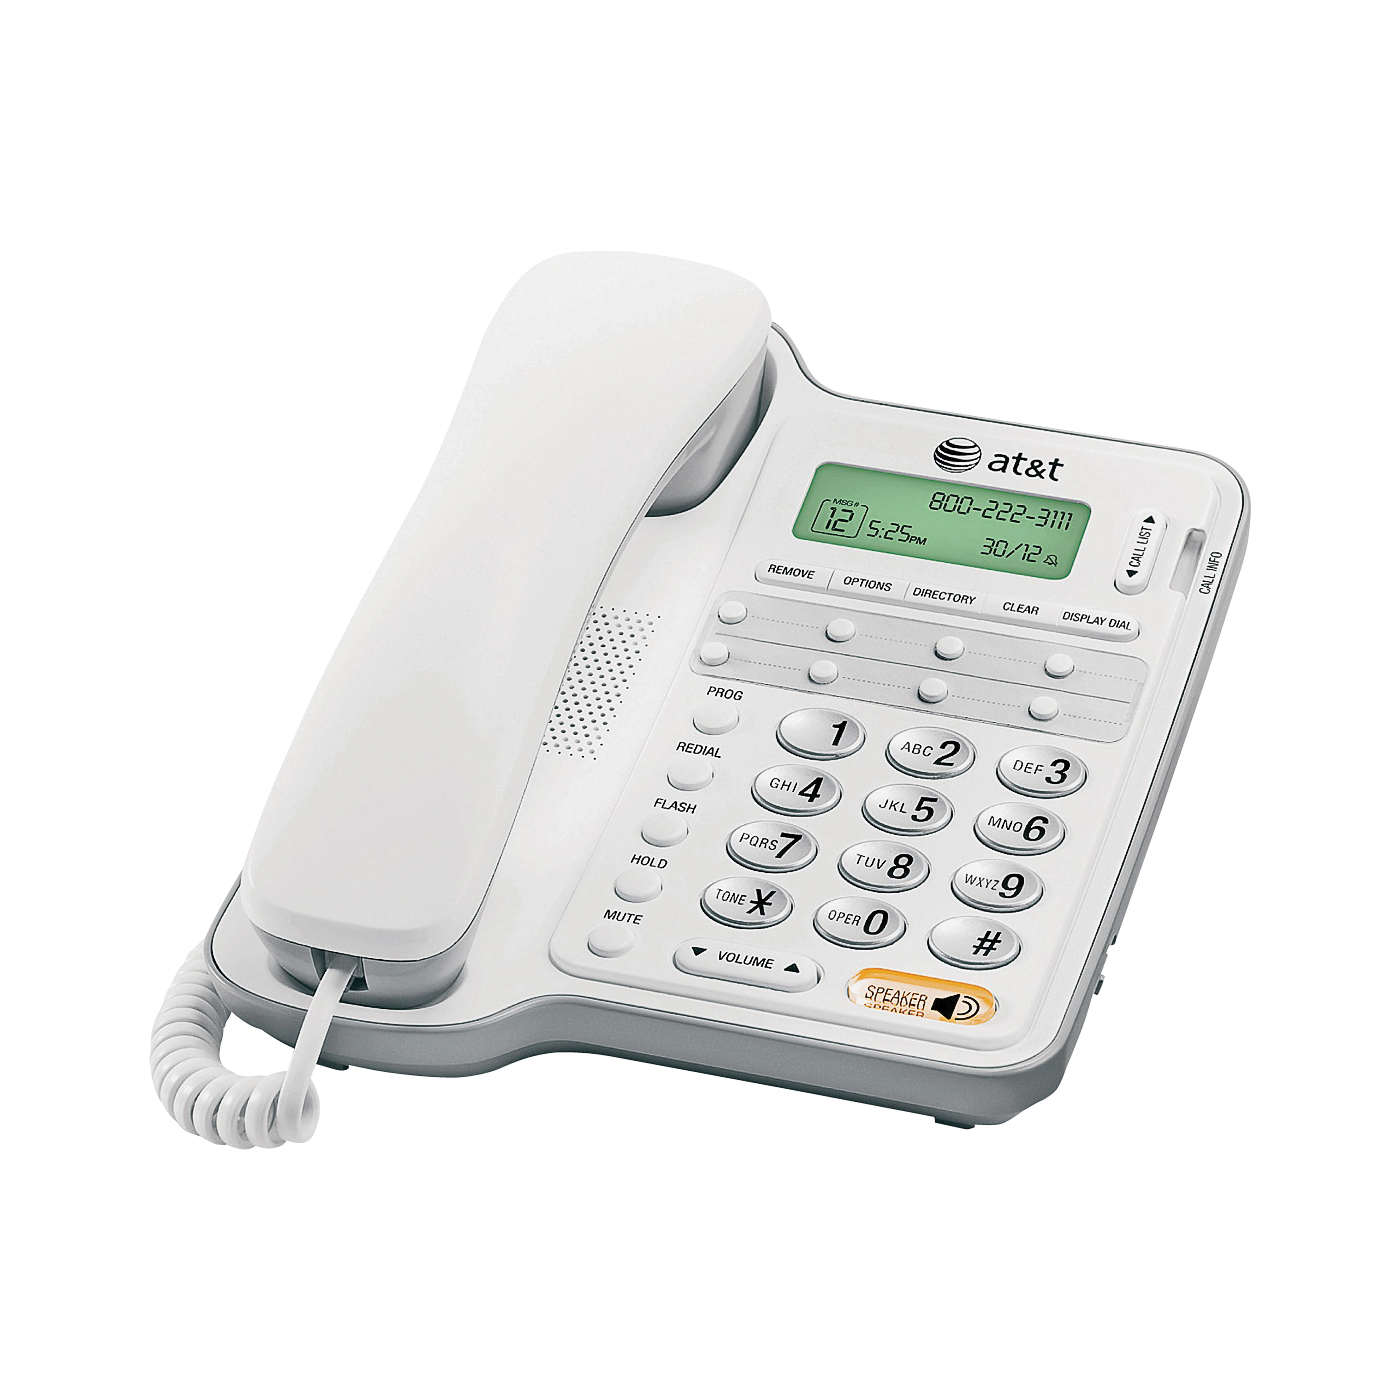 Picture of Vtech AT2909/CL2909 Corded Speakerphone, 65 Name Input, Digital Display, Gray/White